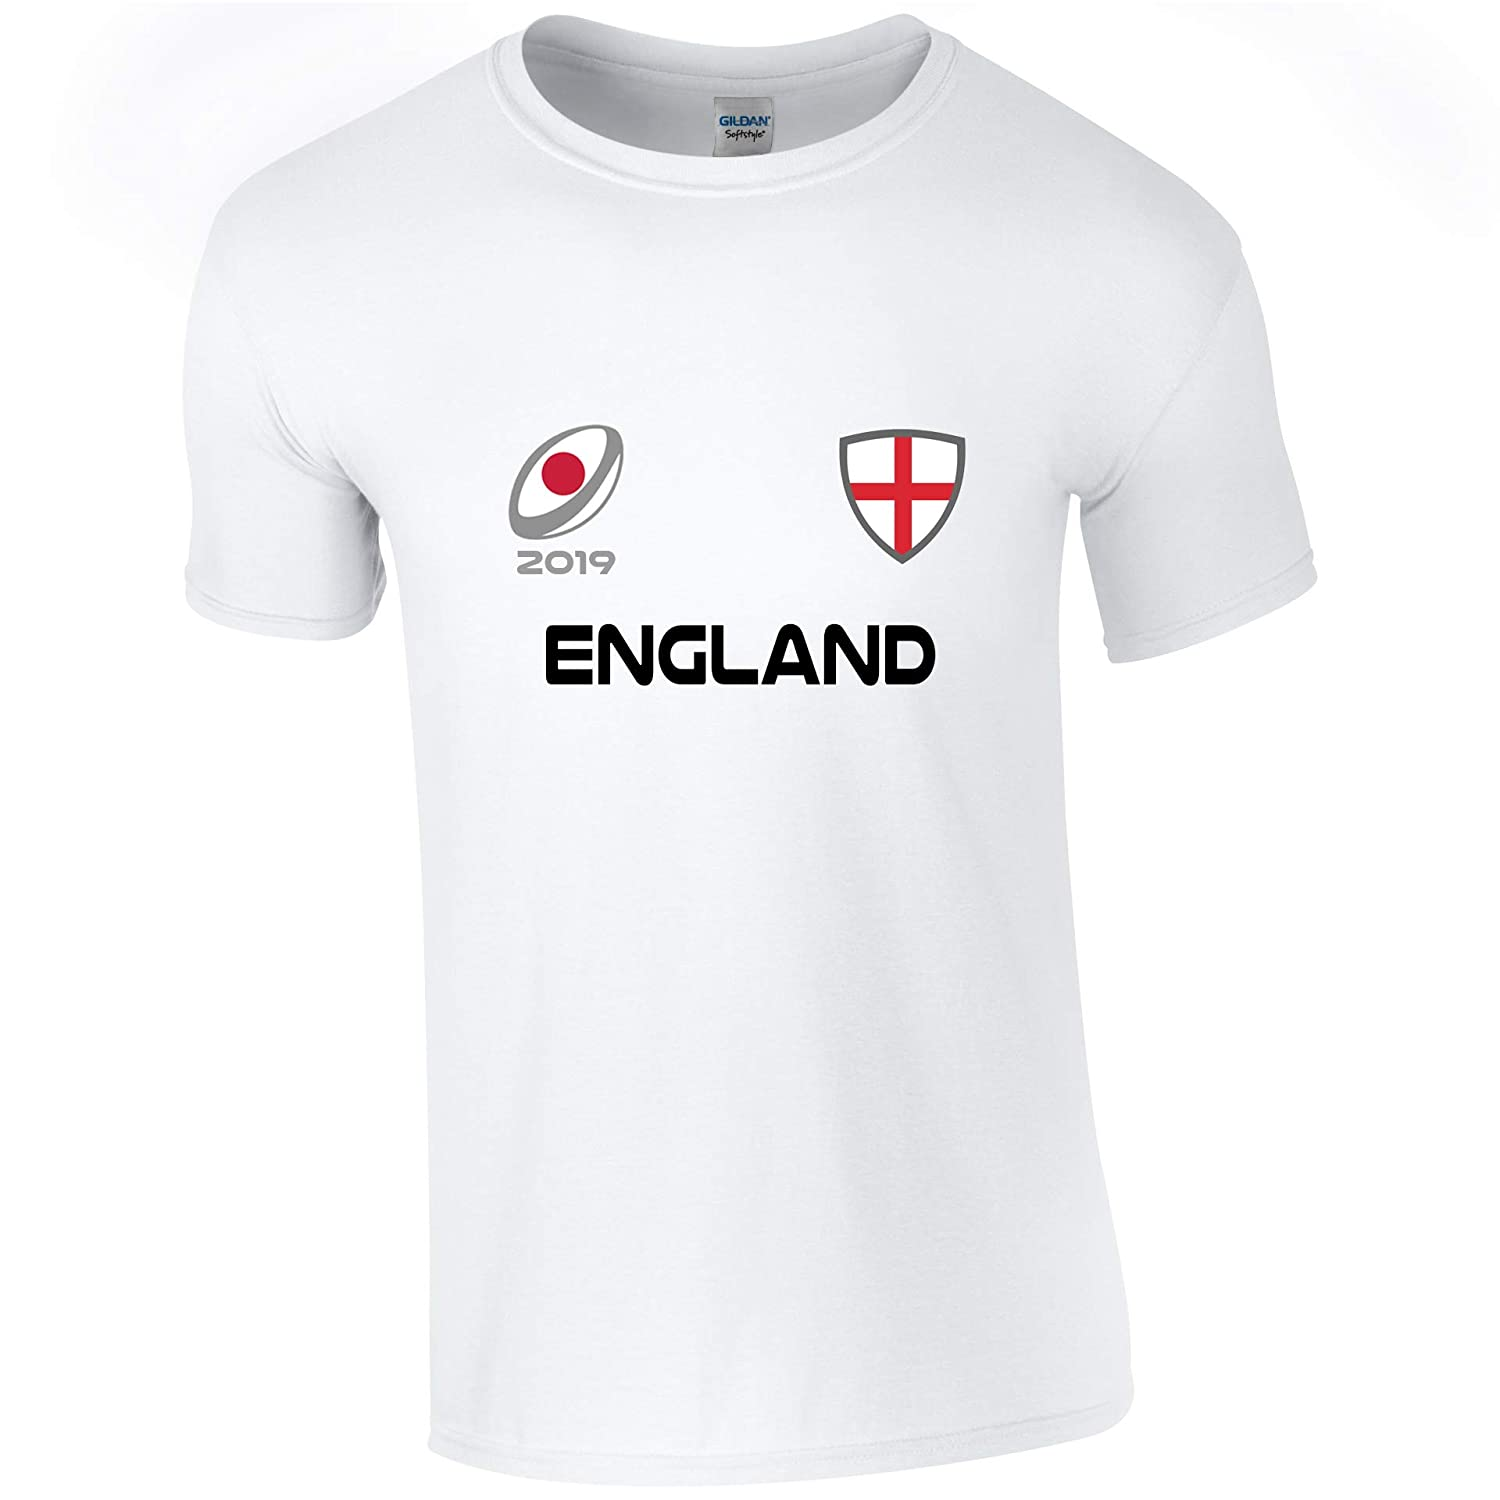 EBUK England Rugby World Cup 2019 Rugby Union Childrens Kids T Shirt